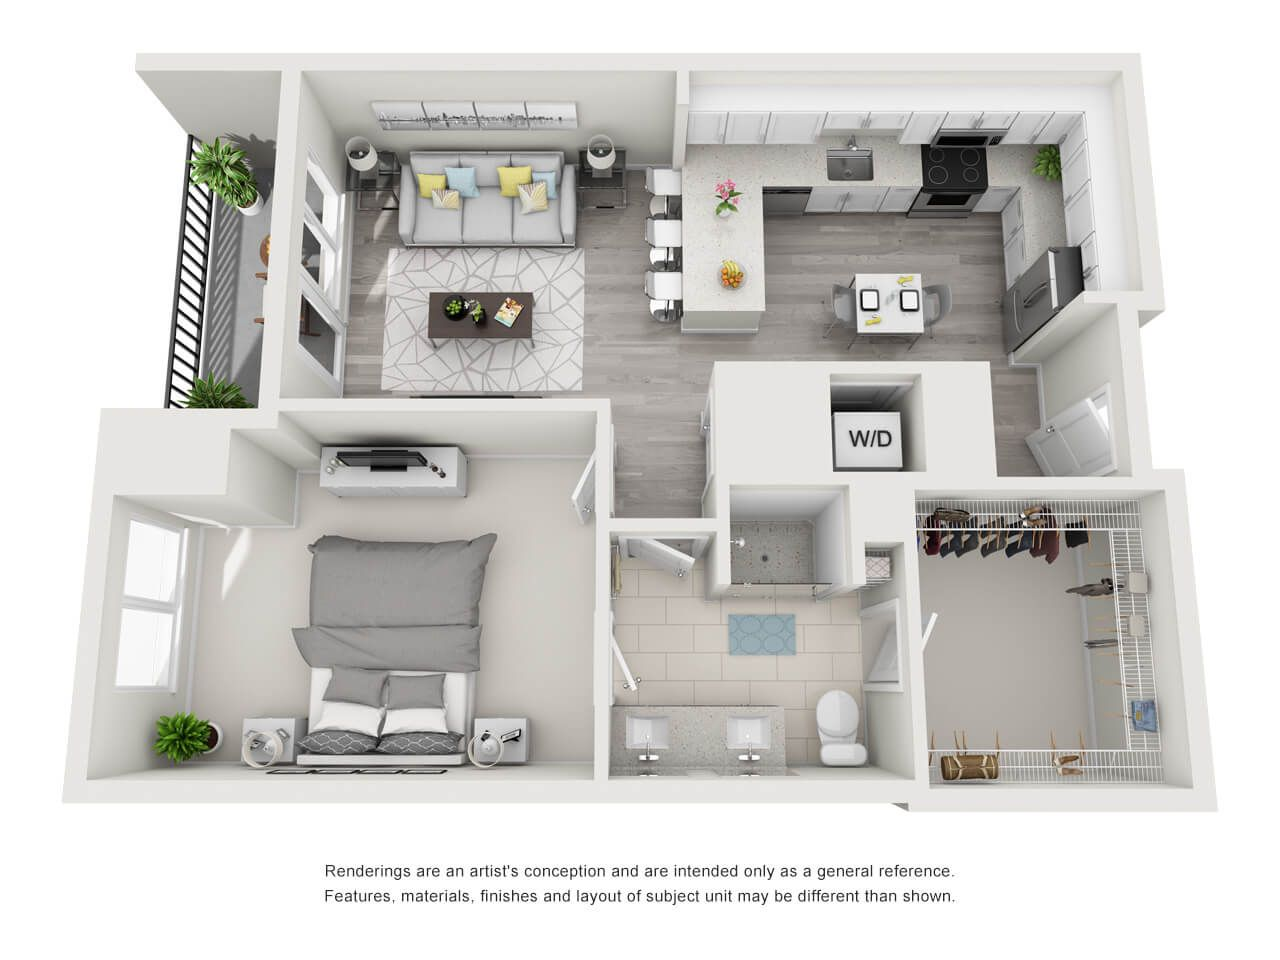 500 Harbour Island Offers Studio One And Two Bedroom Apartments With Upscale Finishes On Harbour Apartment Floor Plans Apartment Floor Plan Apartment Layout